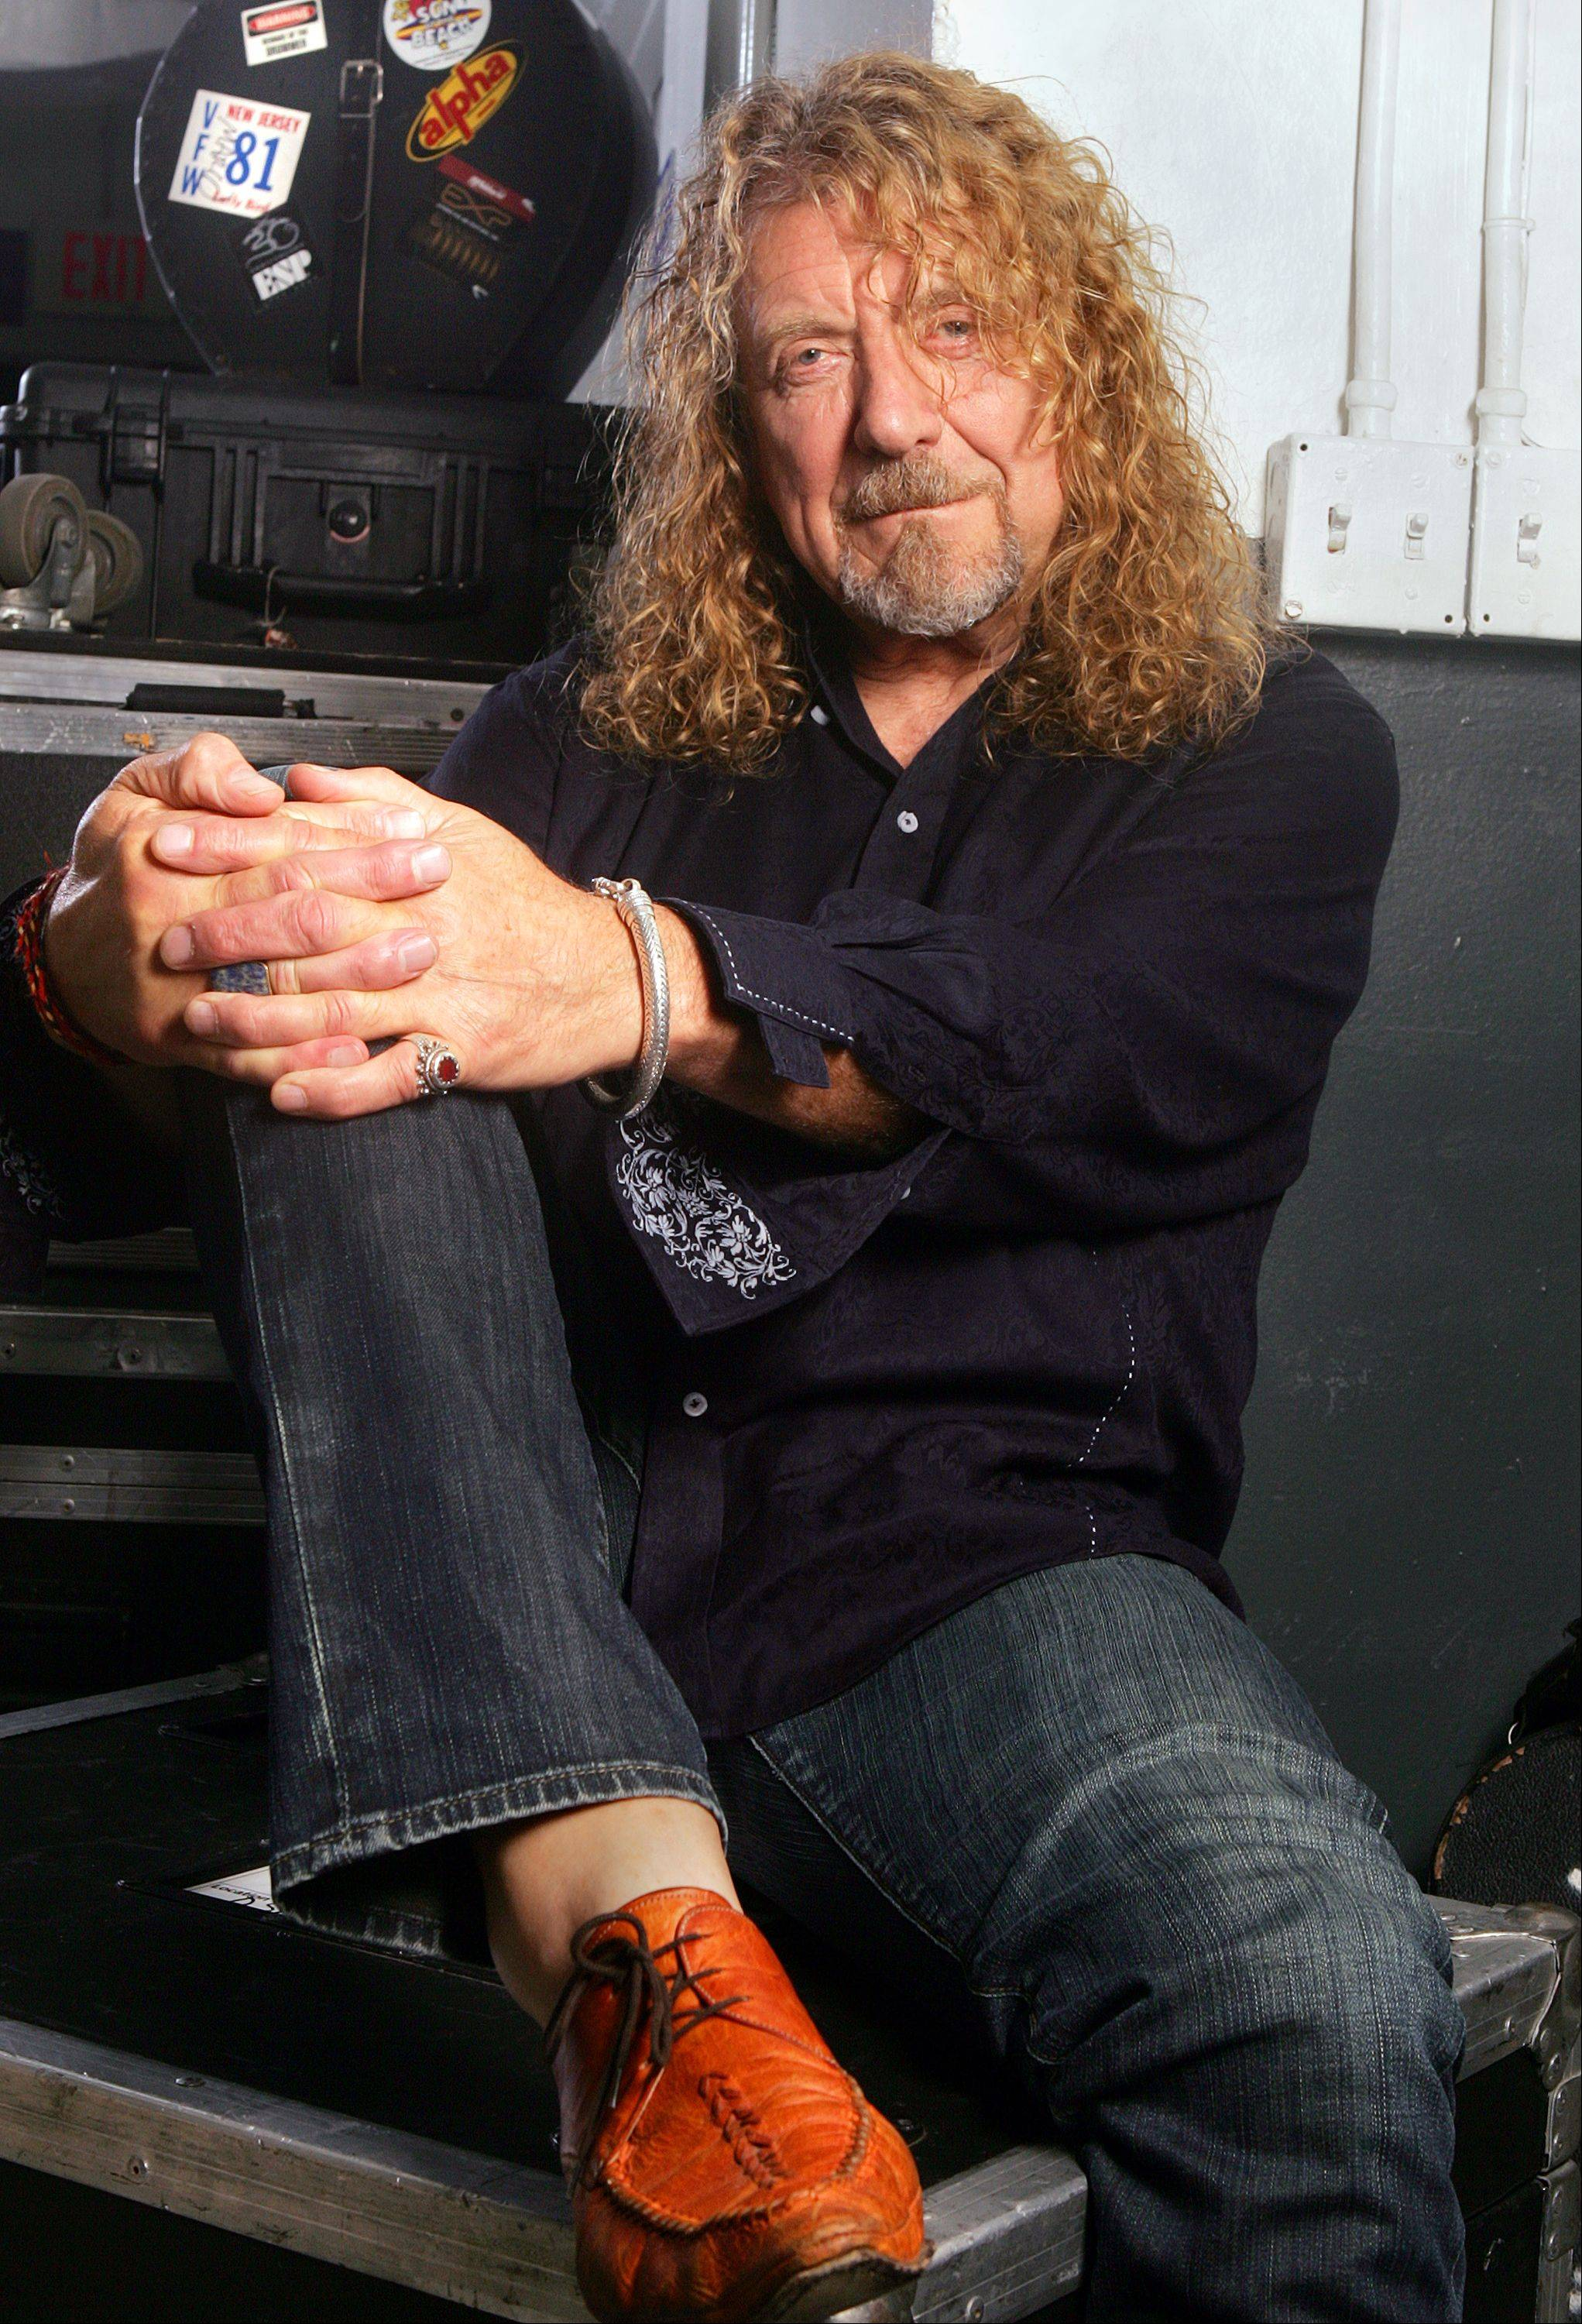 Legendary rocker Robert Plant will perform at the 2013 Taste of Chicago.